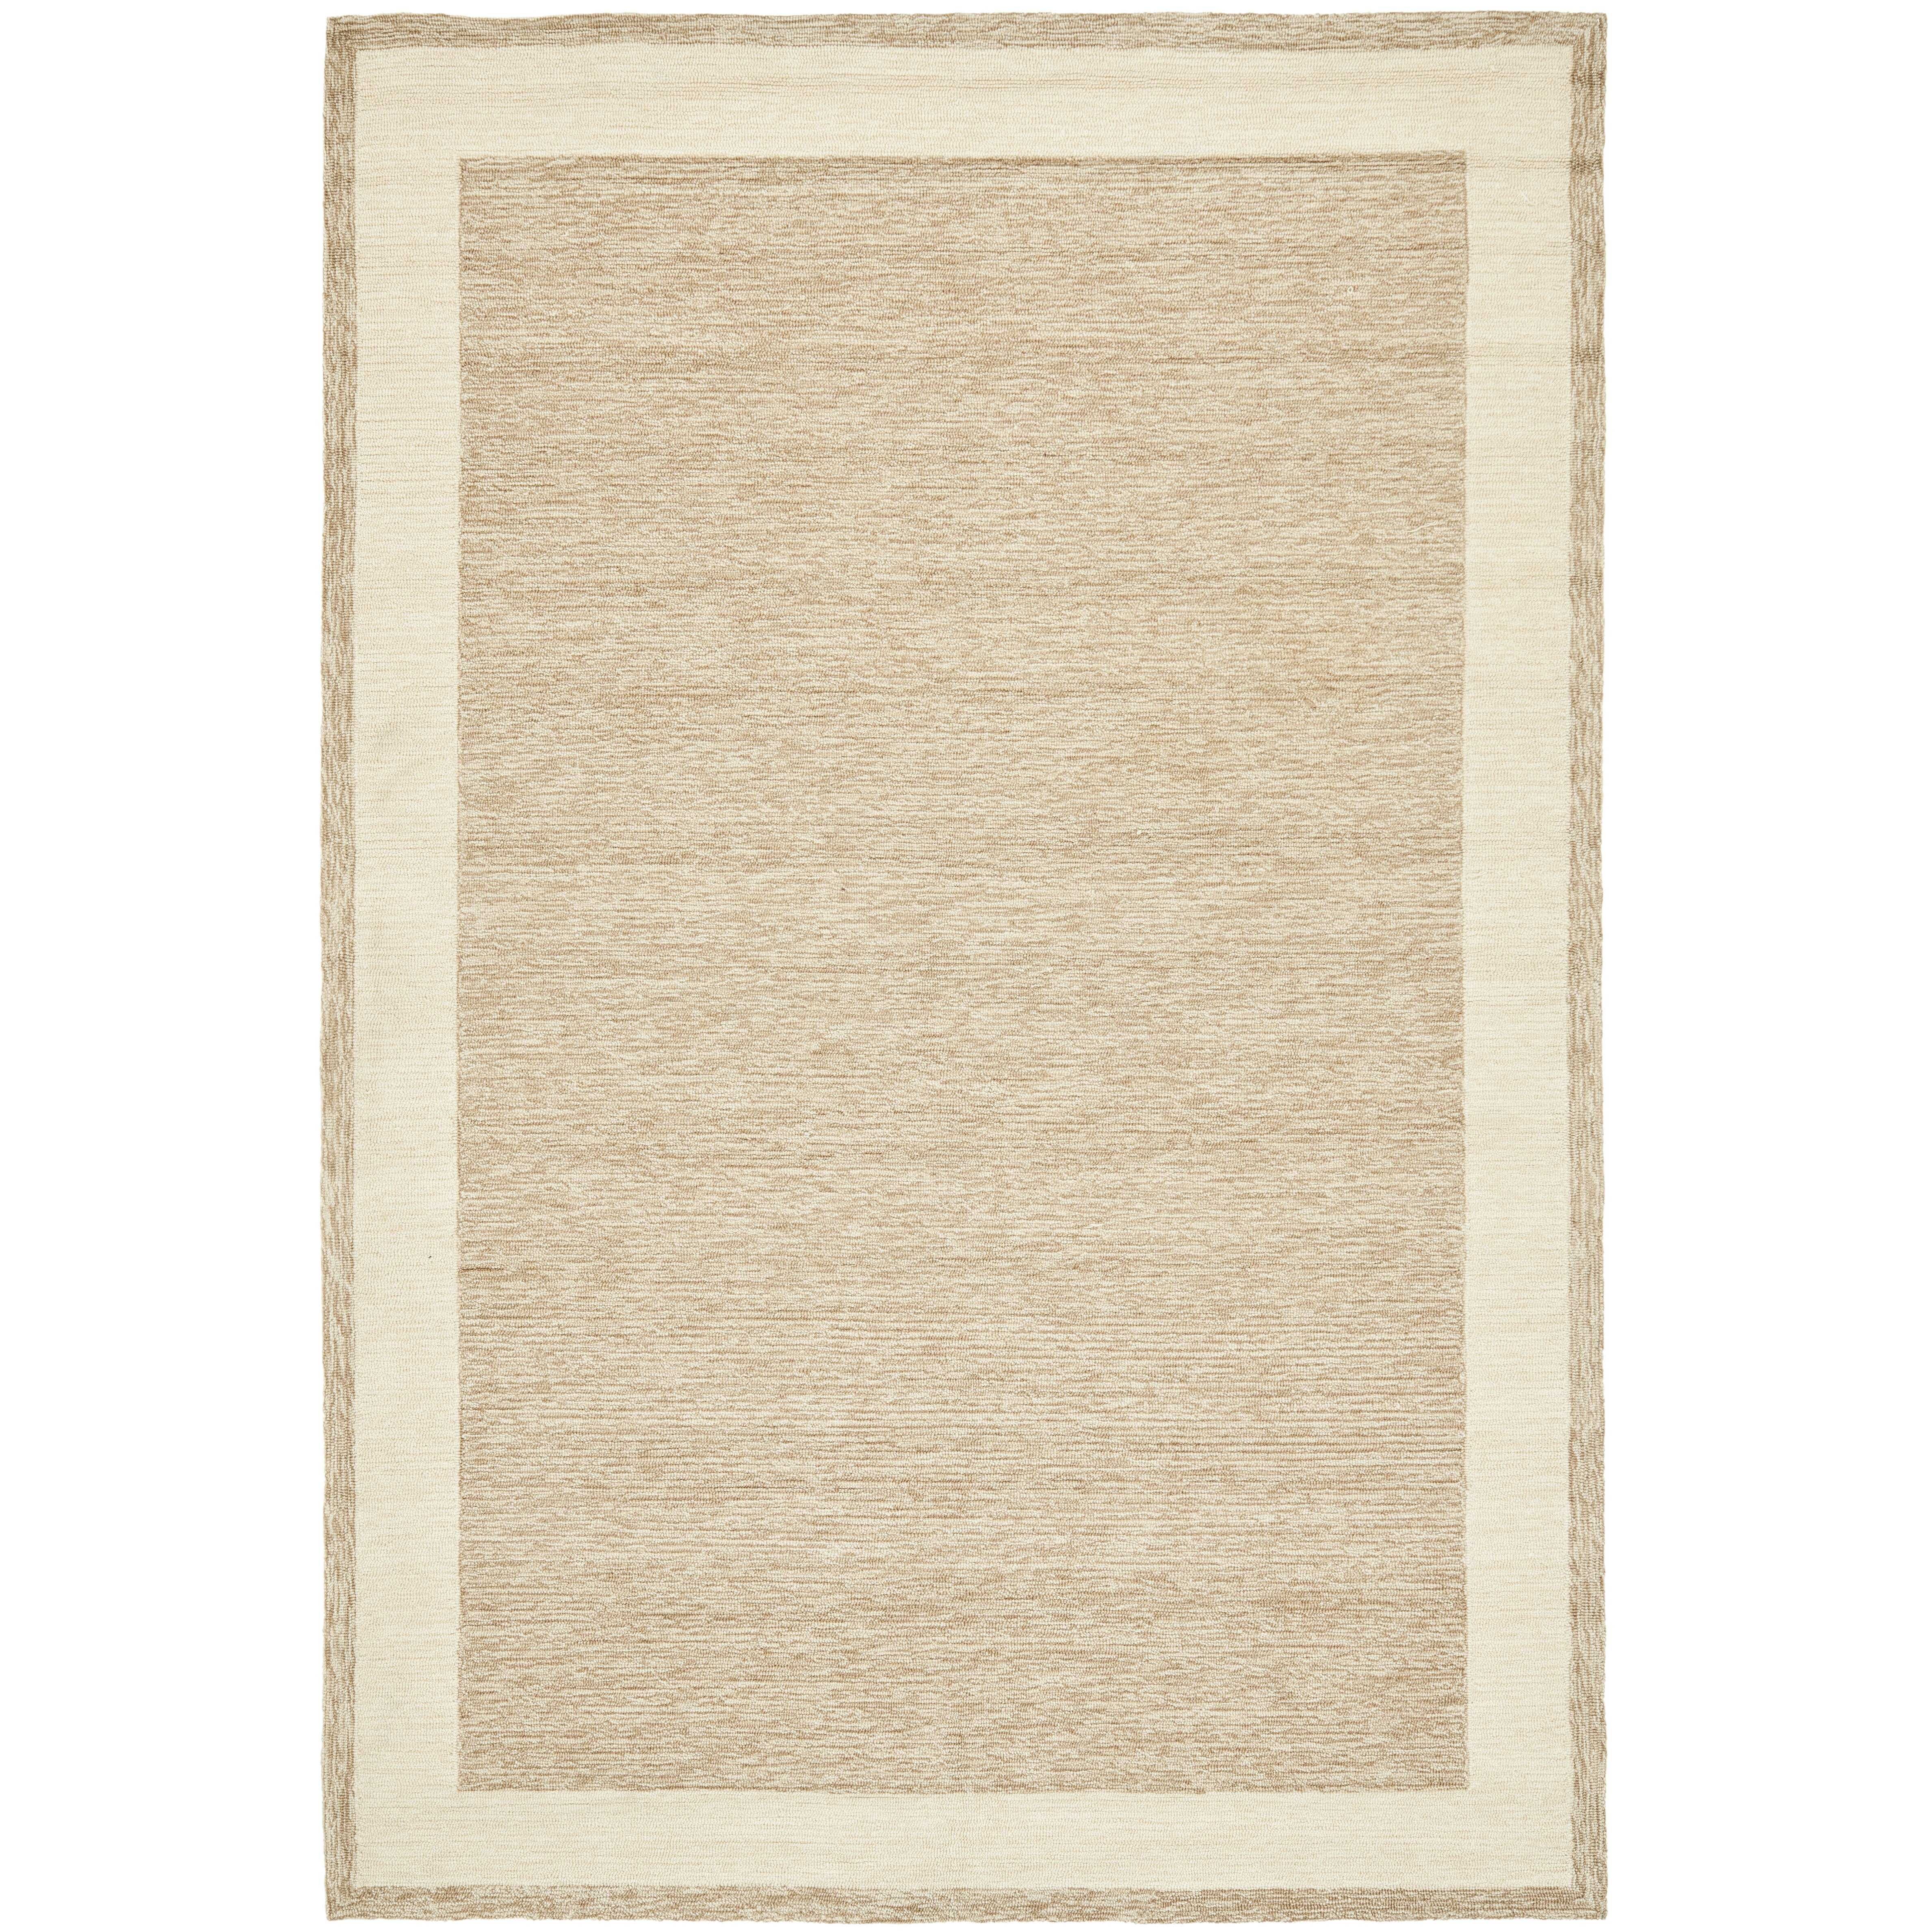 safavieh chelsea ivory amp blue wilton trellis cheerful home office rug wayfair safavieh